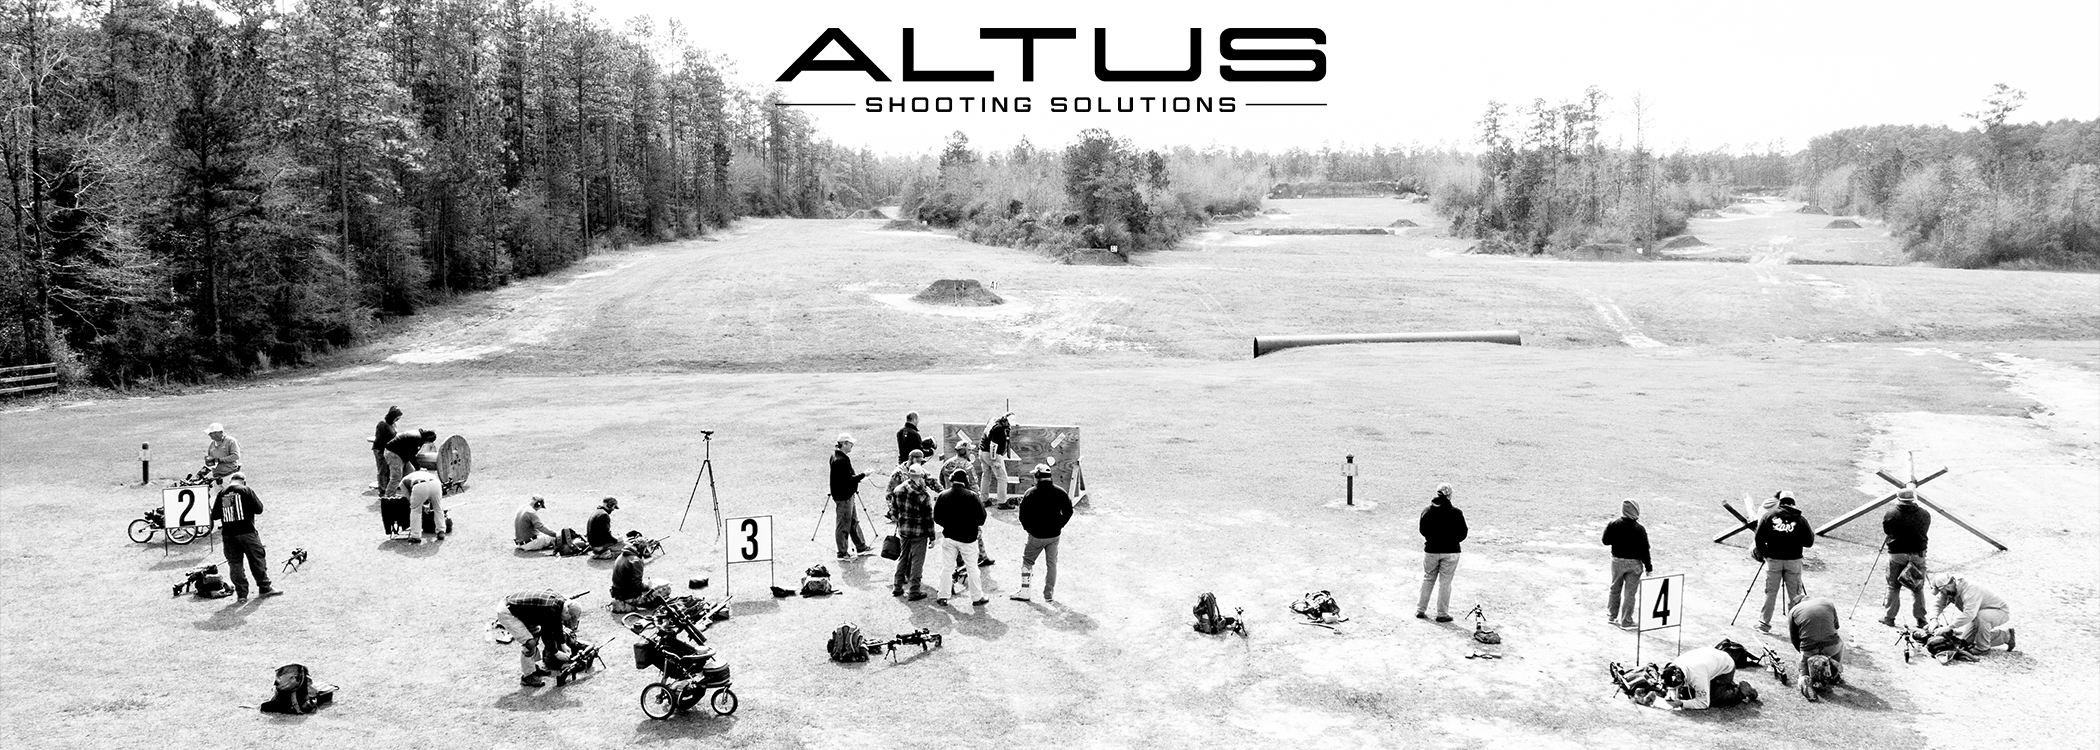 altus-competition-collection-photo.jpg